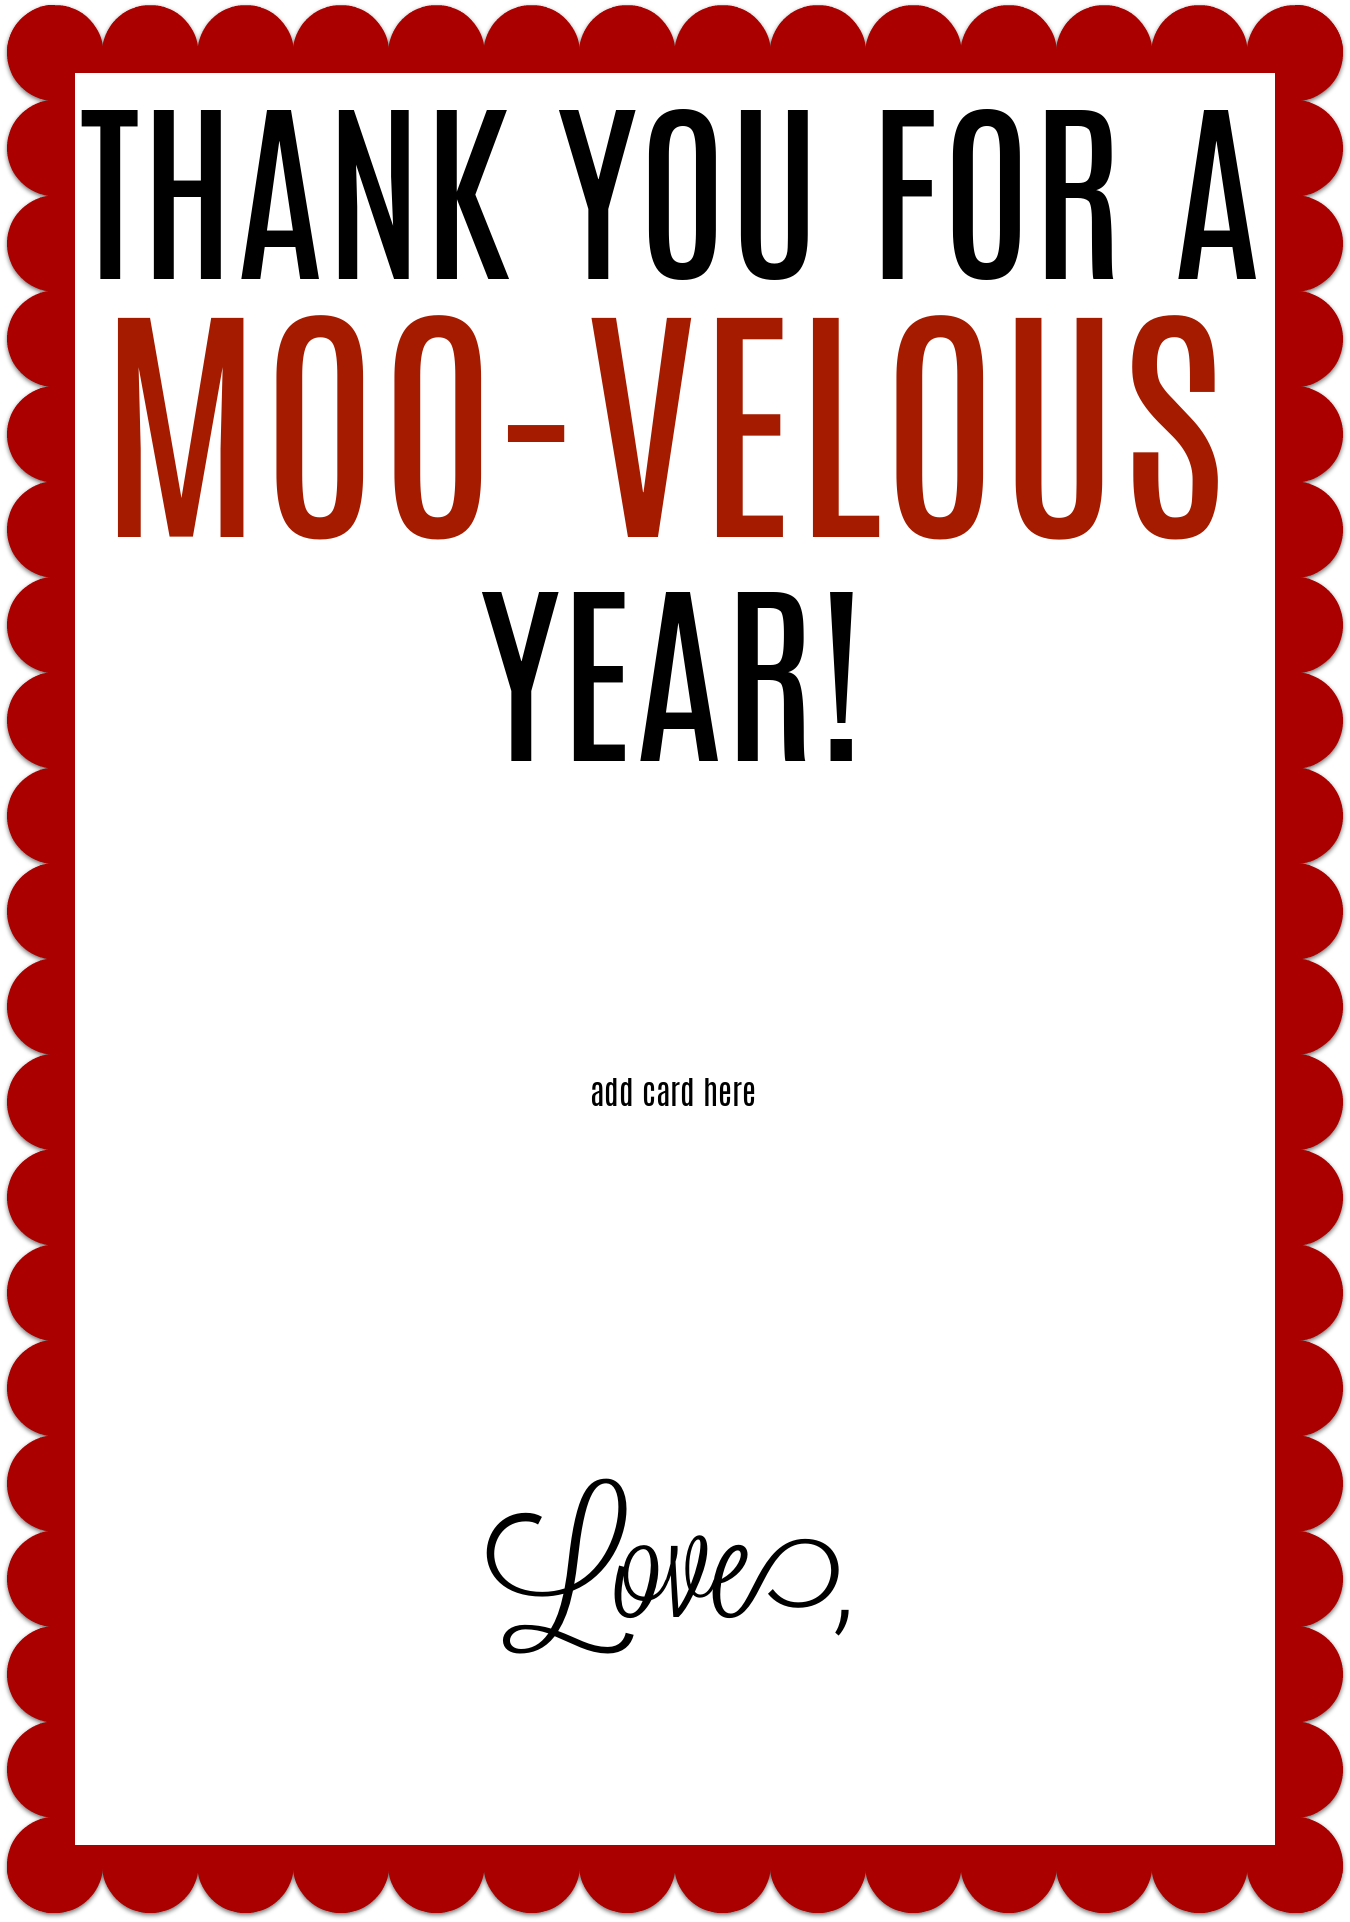 Thank you for a MOO-velous year - Teacher Appreciation Free Chick-fil-a Gift Card Printable